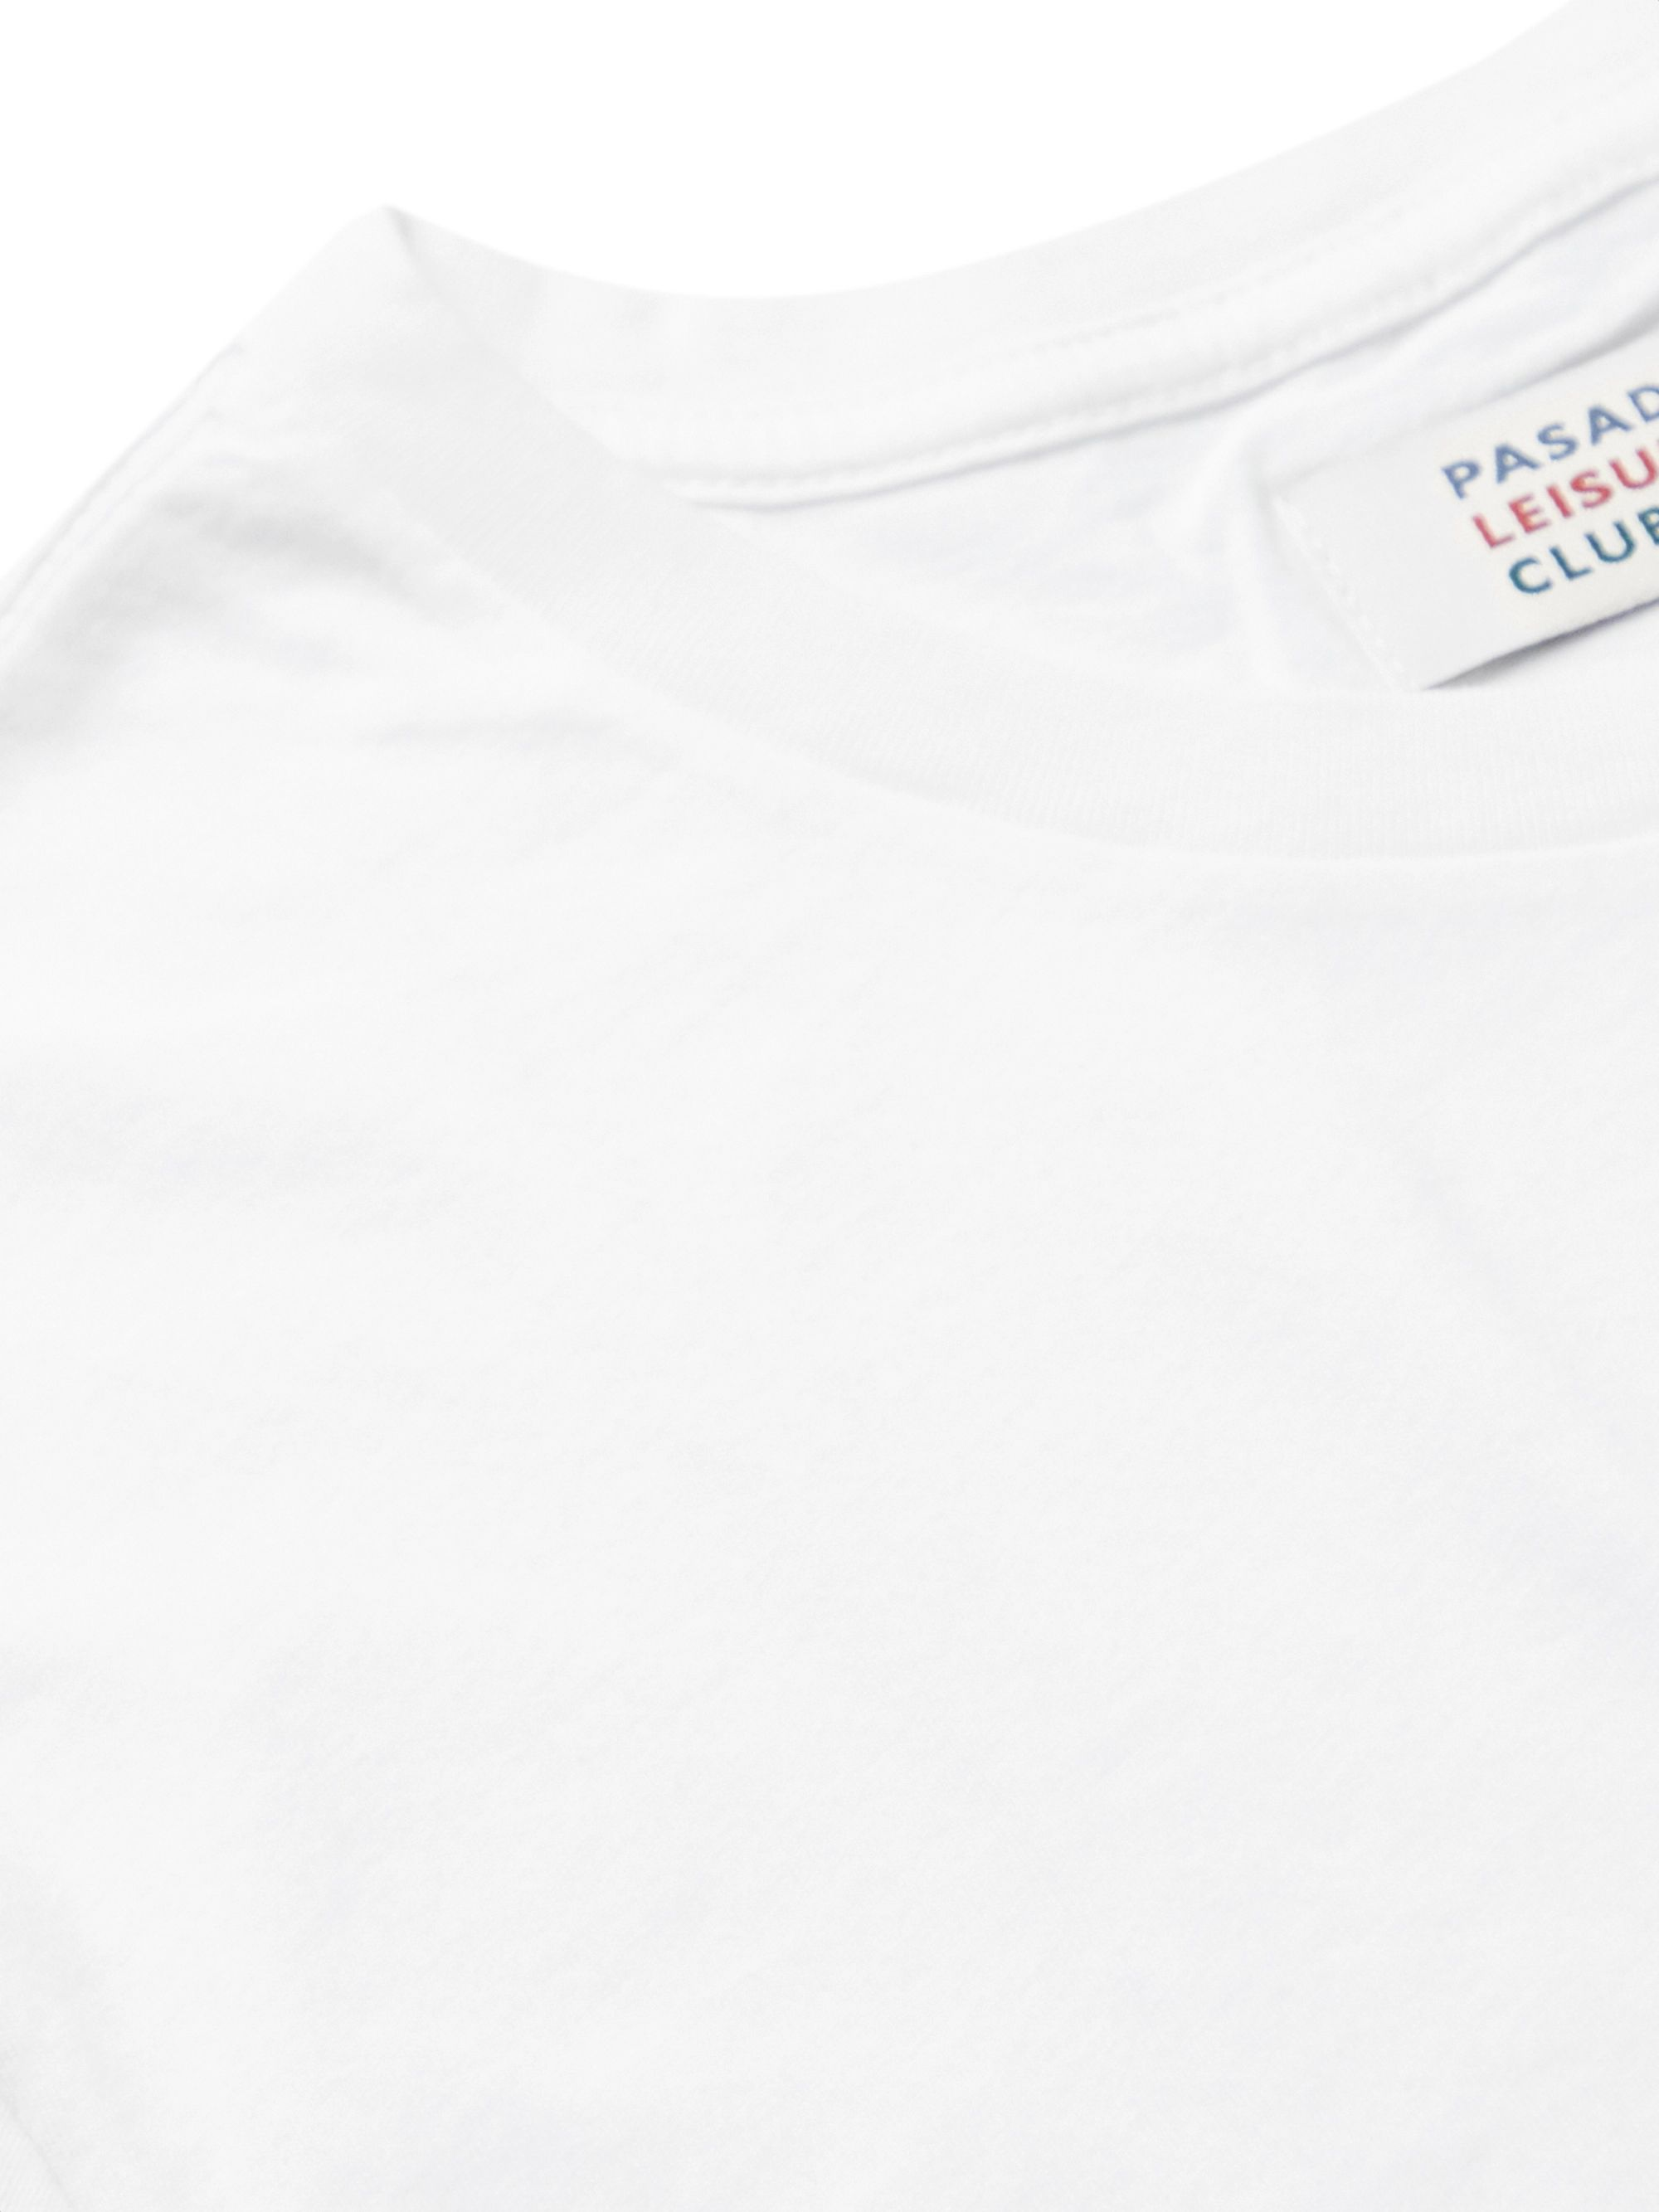 White Synth Printed Enyzme-washed Combed Cotton-jersey T-shirt   Pasadena Leisure Club